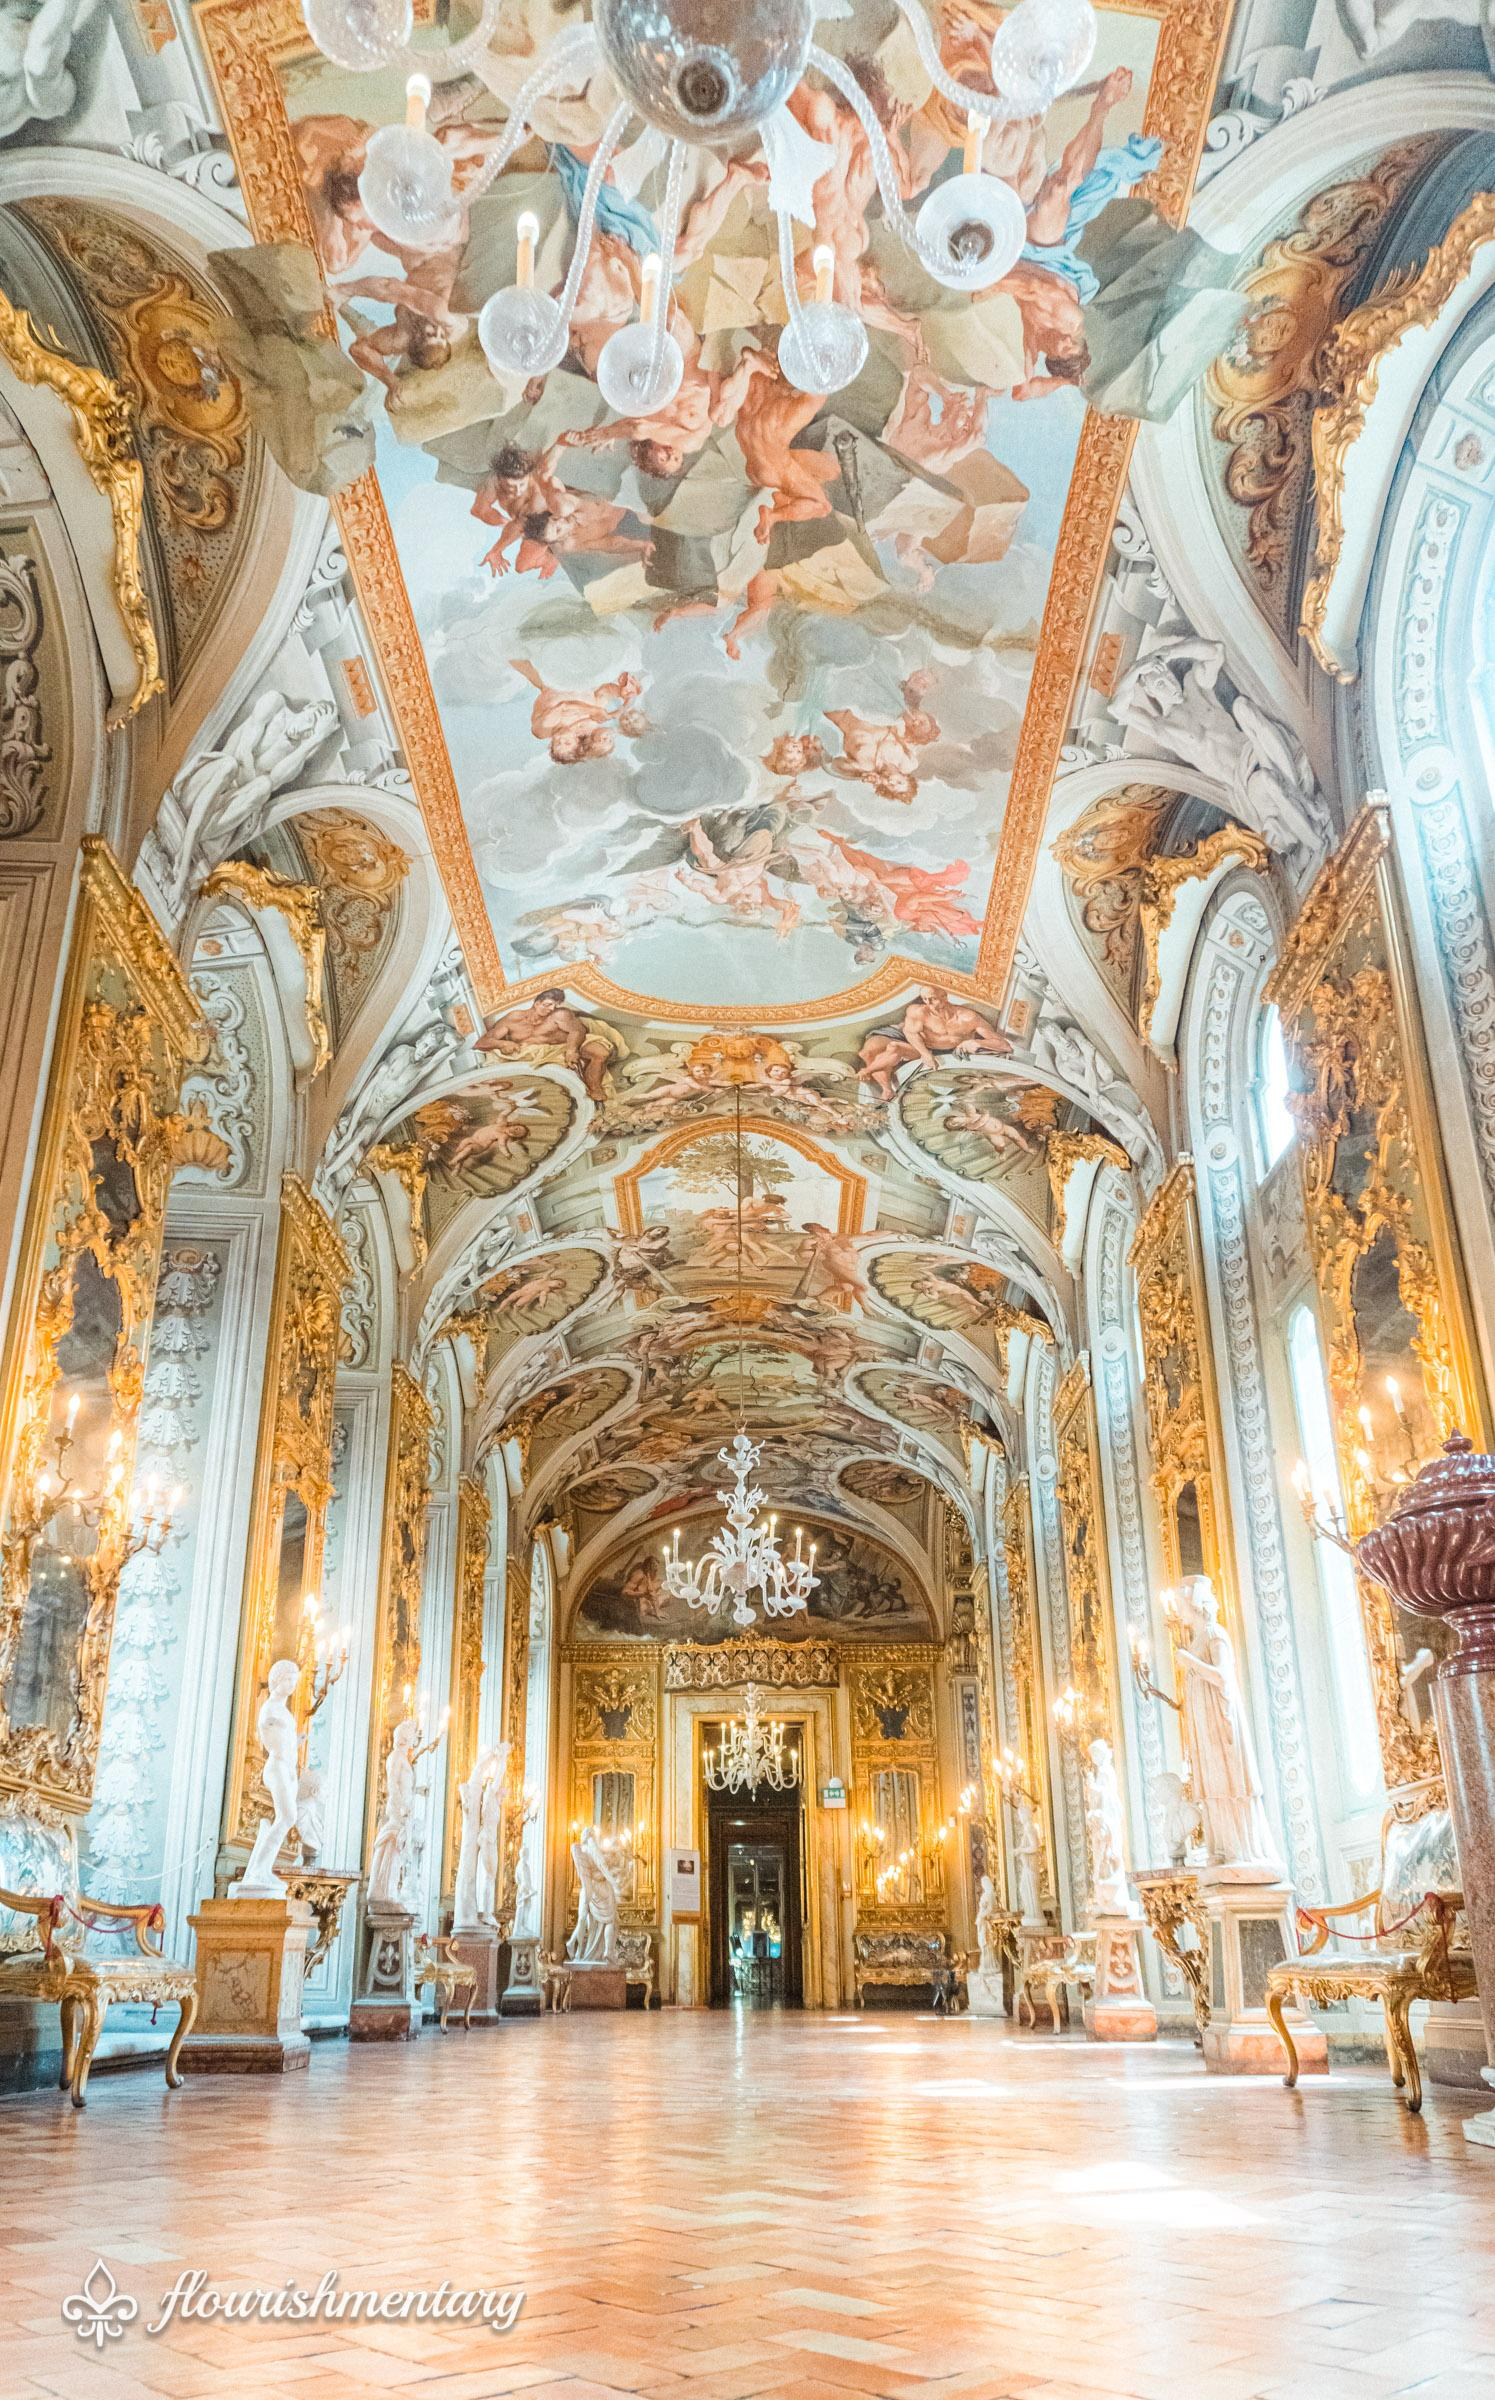 The Hall Of Mirrors Inside The Galleria Doria Pamphilj